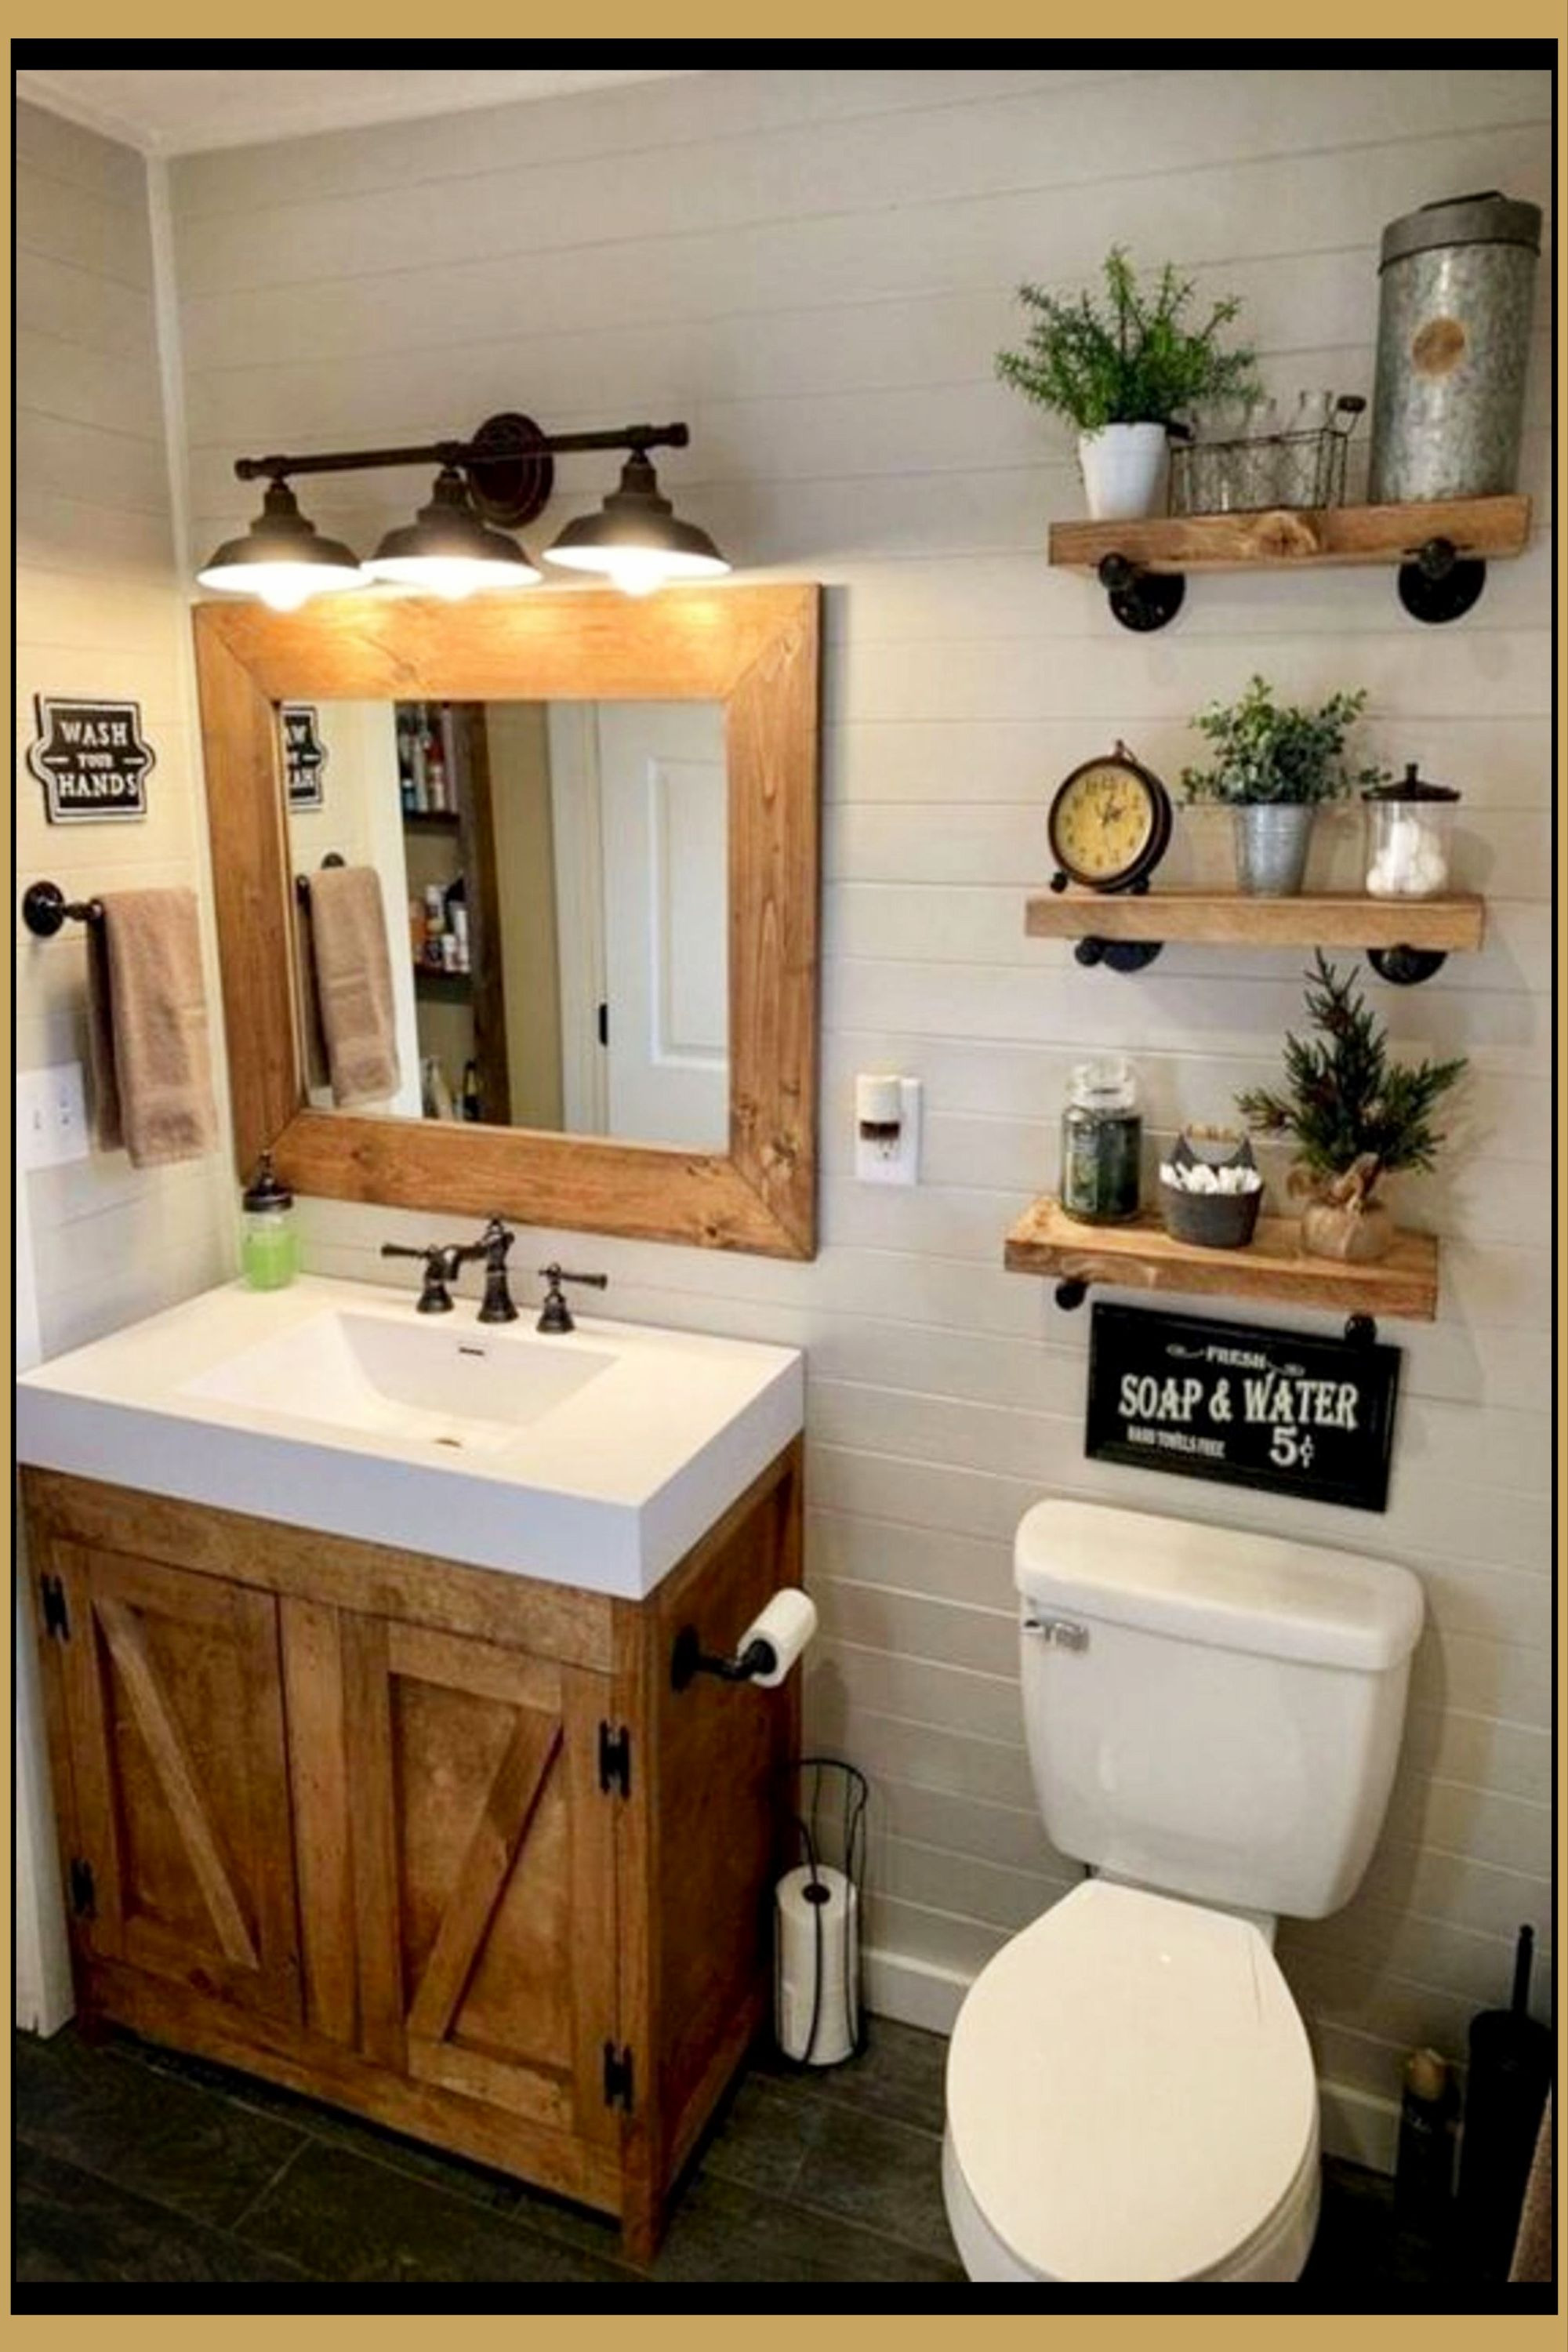 Outhouse Bathroom Decorating Ideas Awesome Country Outhouse Bathroom Decorating Ideas In 2020